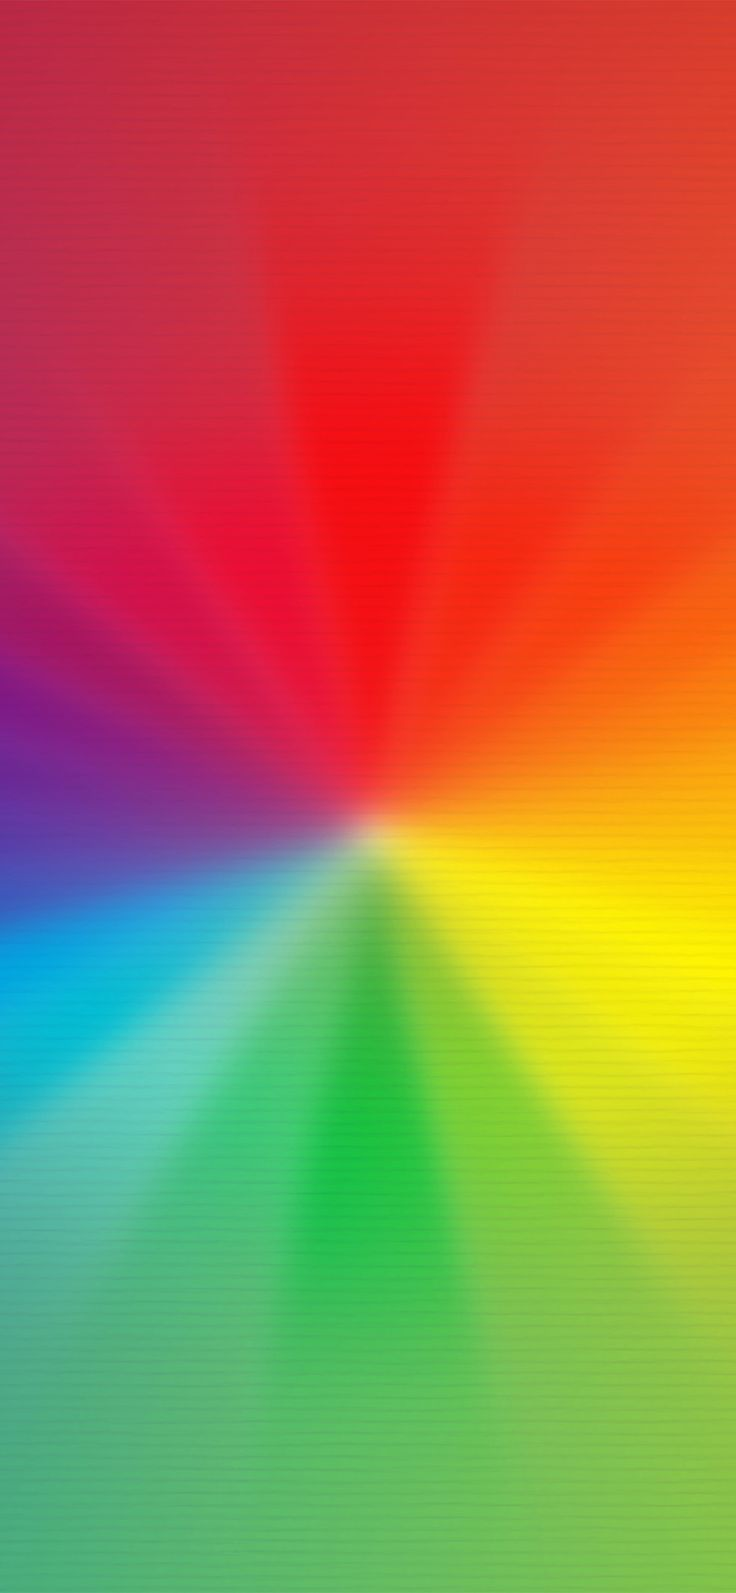 Iphone X Wallpaper - Abstract Colorful Wallpaper For Iphone , HD Wallpaper & Backgrounds